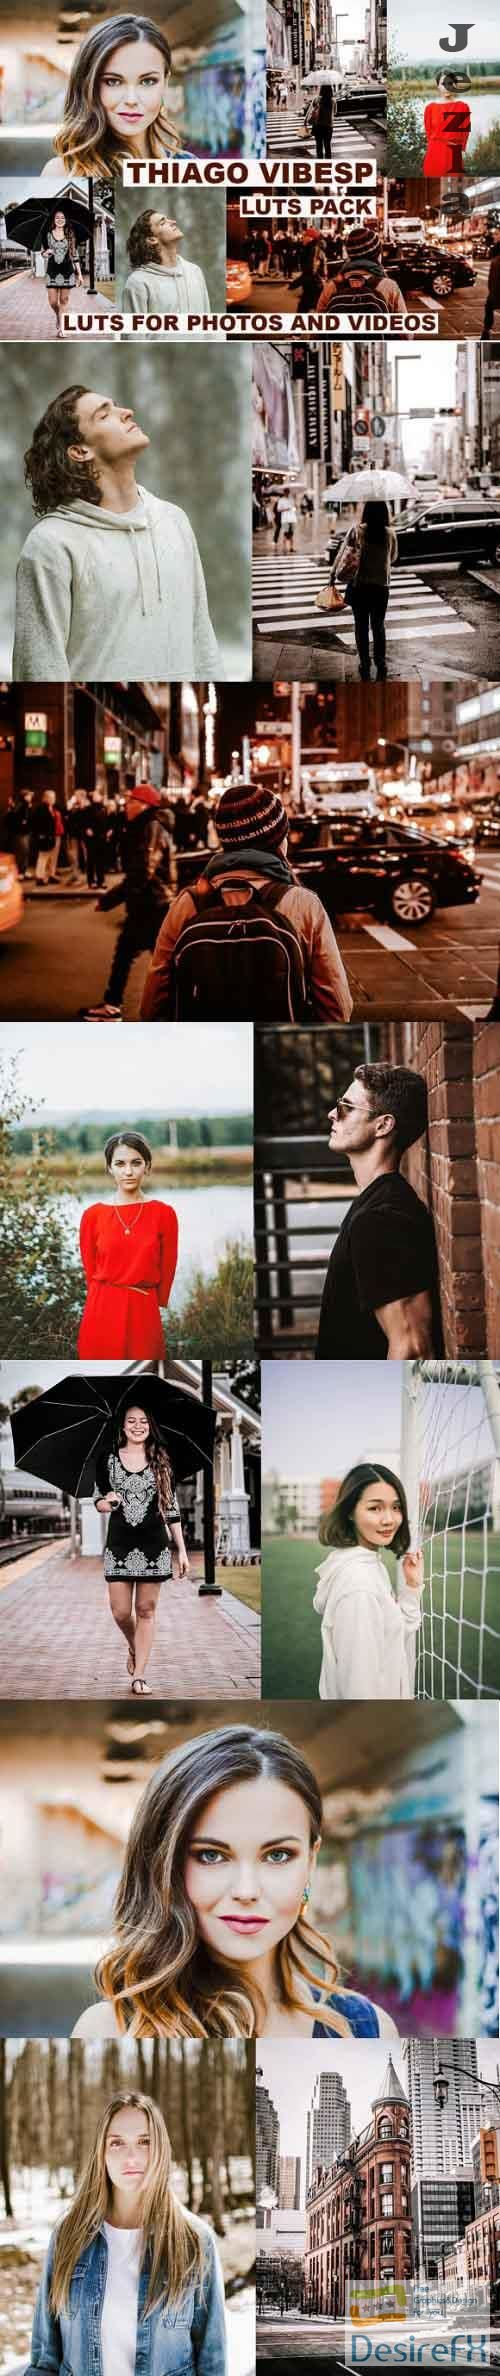 Cinematic LUTs Pack for Photos & Videos